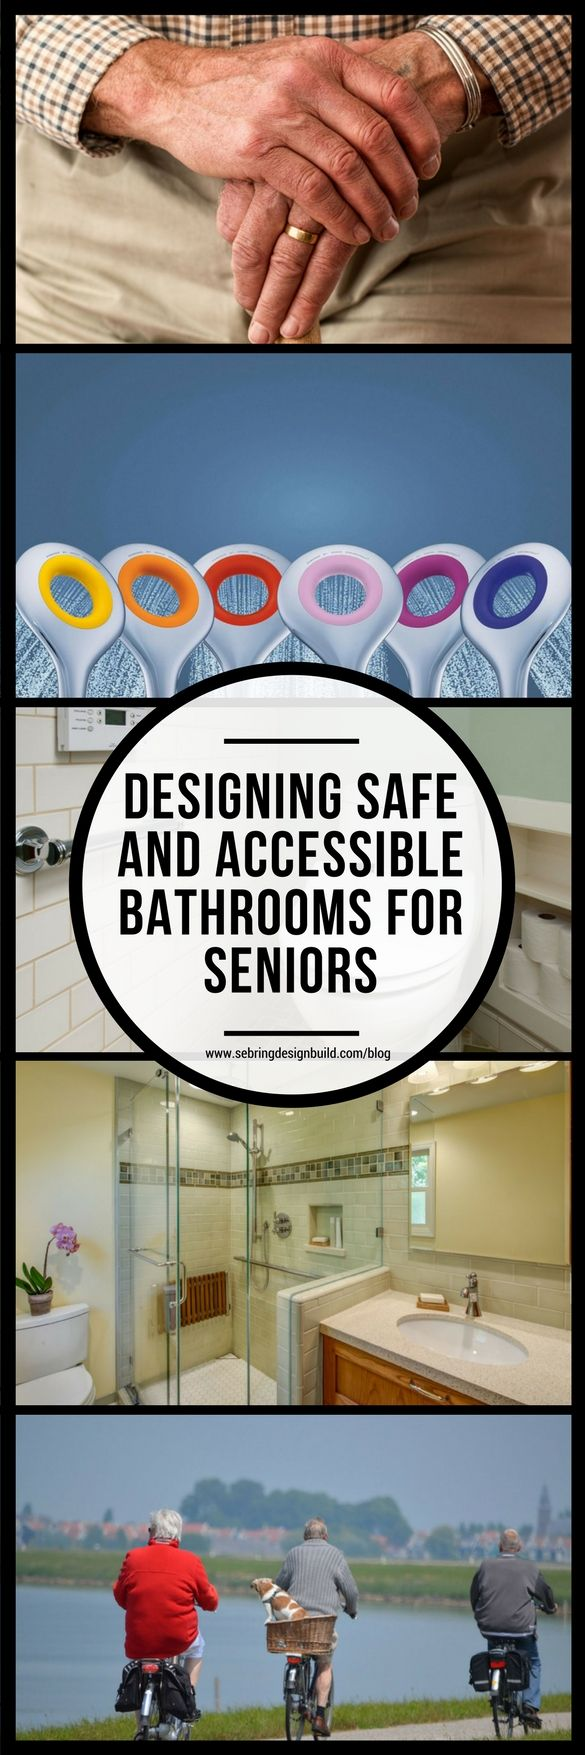 When seniors can safely and easily use the bathroom on their own, it allows them to age in place — and with dignity.  So designing safe and accessible bathrooms are key.  Making accommodations for wheelchairs, walkers, medical equipment, unsteady balance, and more will go a long way in helping your loved one feel independent and safe.